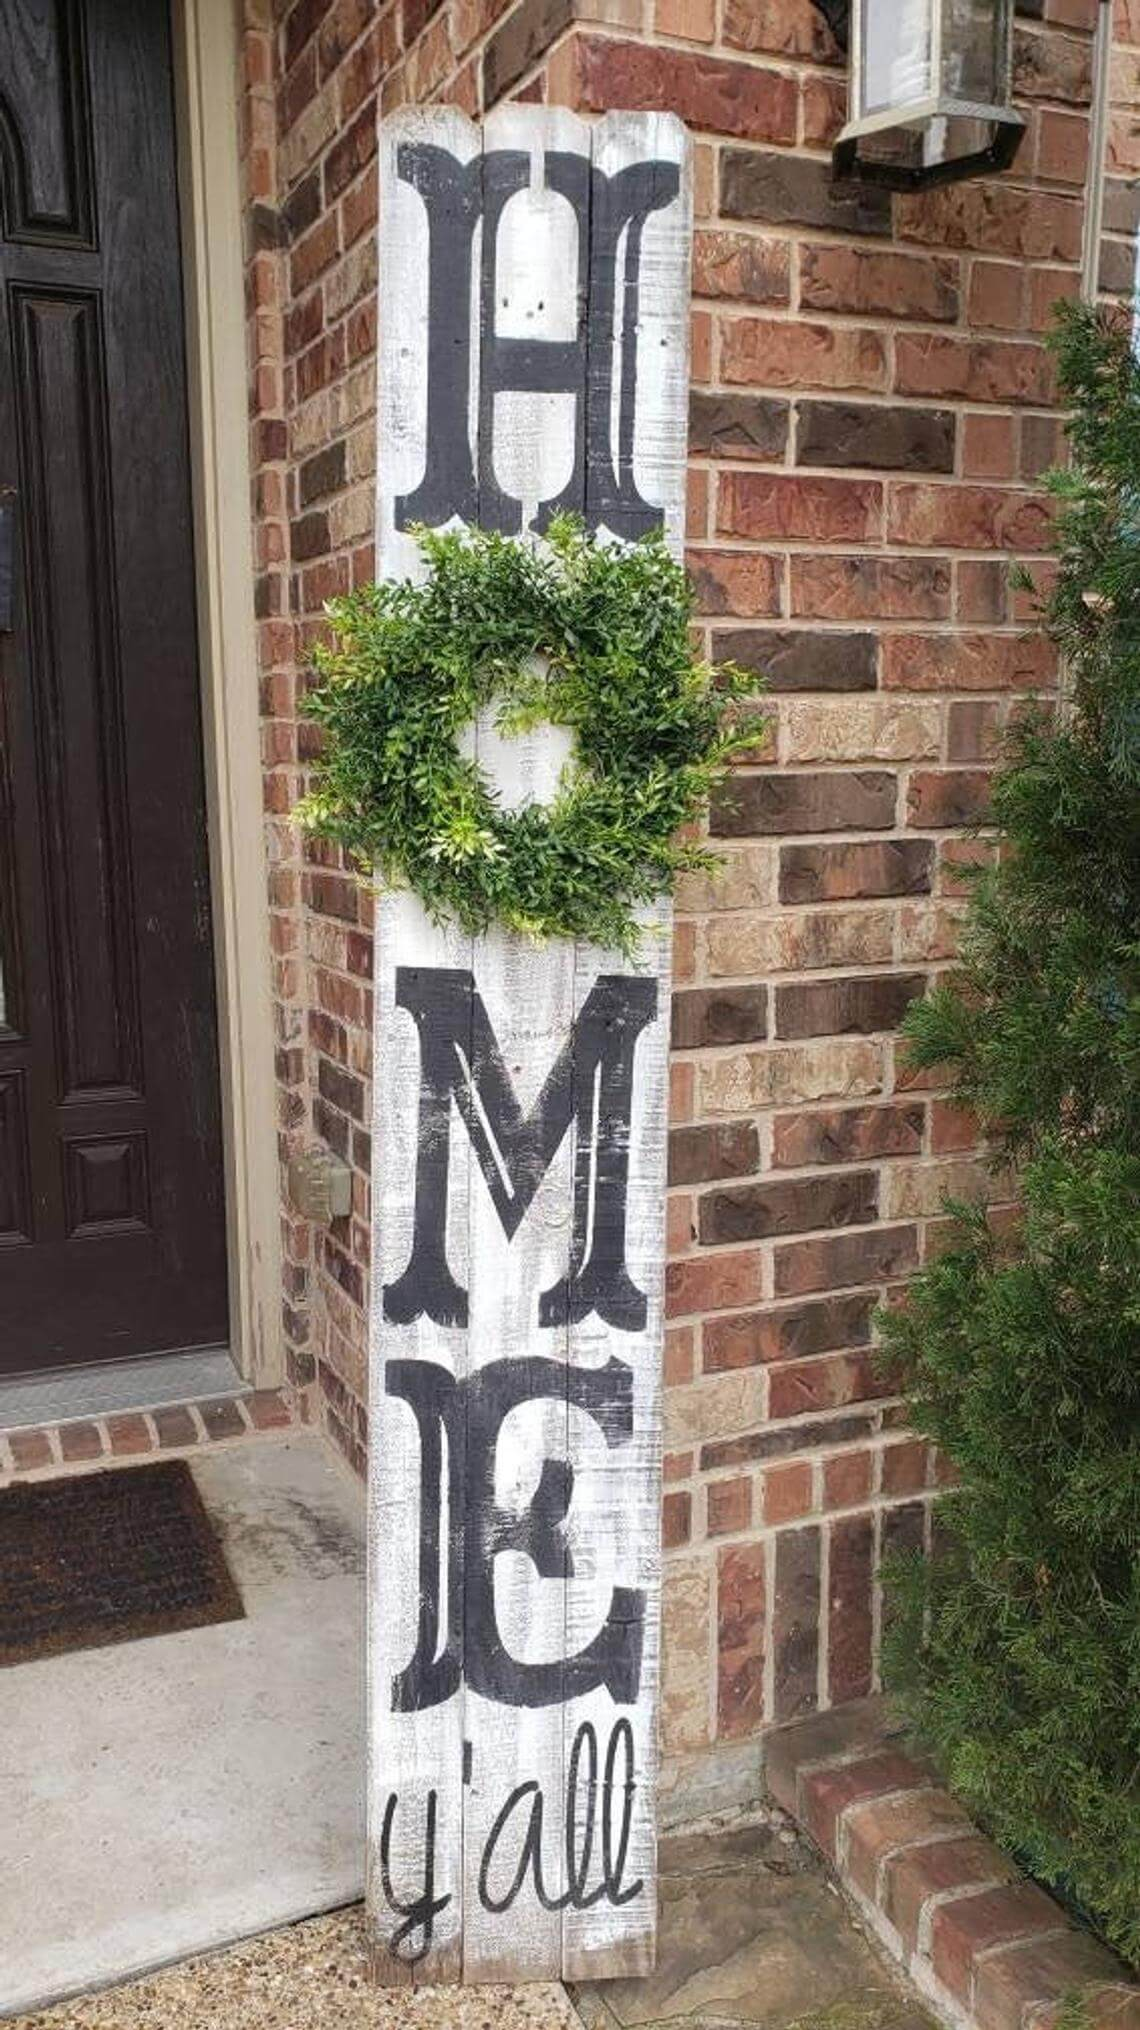 Home Sign with Decorative Wreath